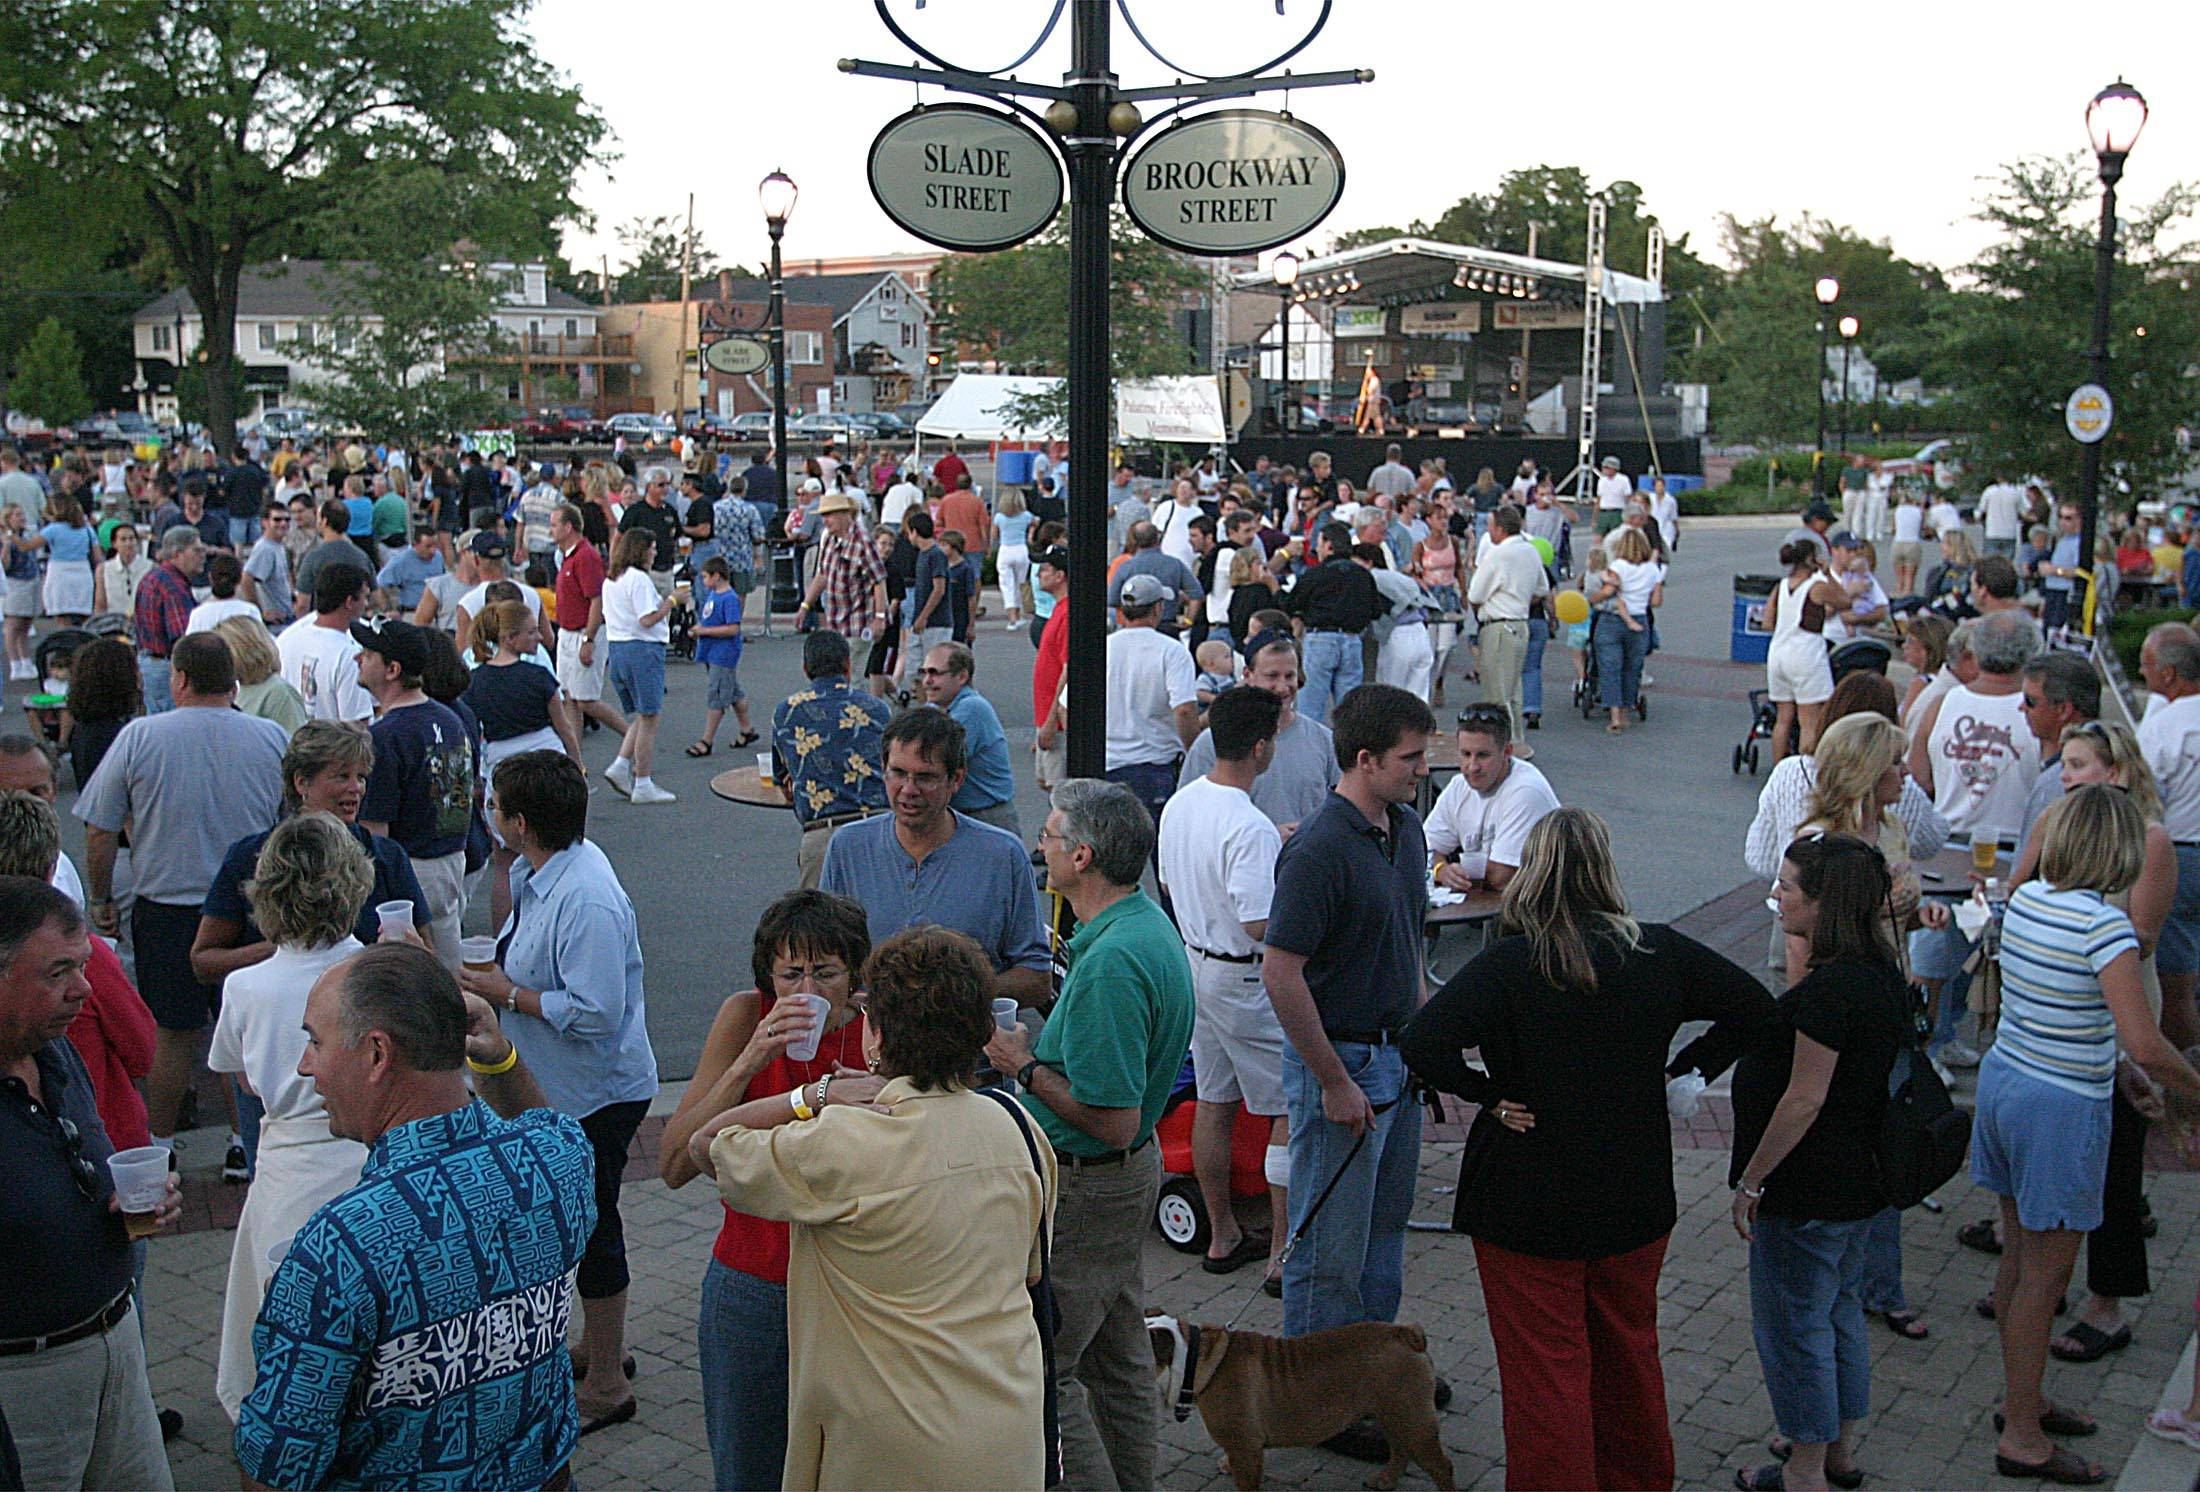 Crowds will again pack the heart of Palatine this weekend for the annual Downtown Palatine Street Fest. The annual event features live music from some of the suburbs' favorite local bands, food from several Palatine eateries and lots of games and activities for kids.